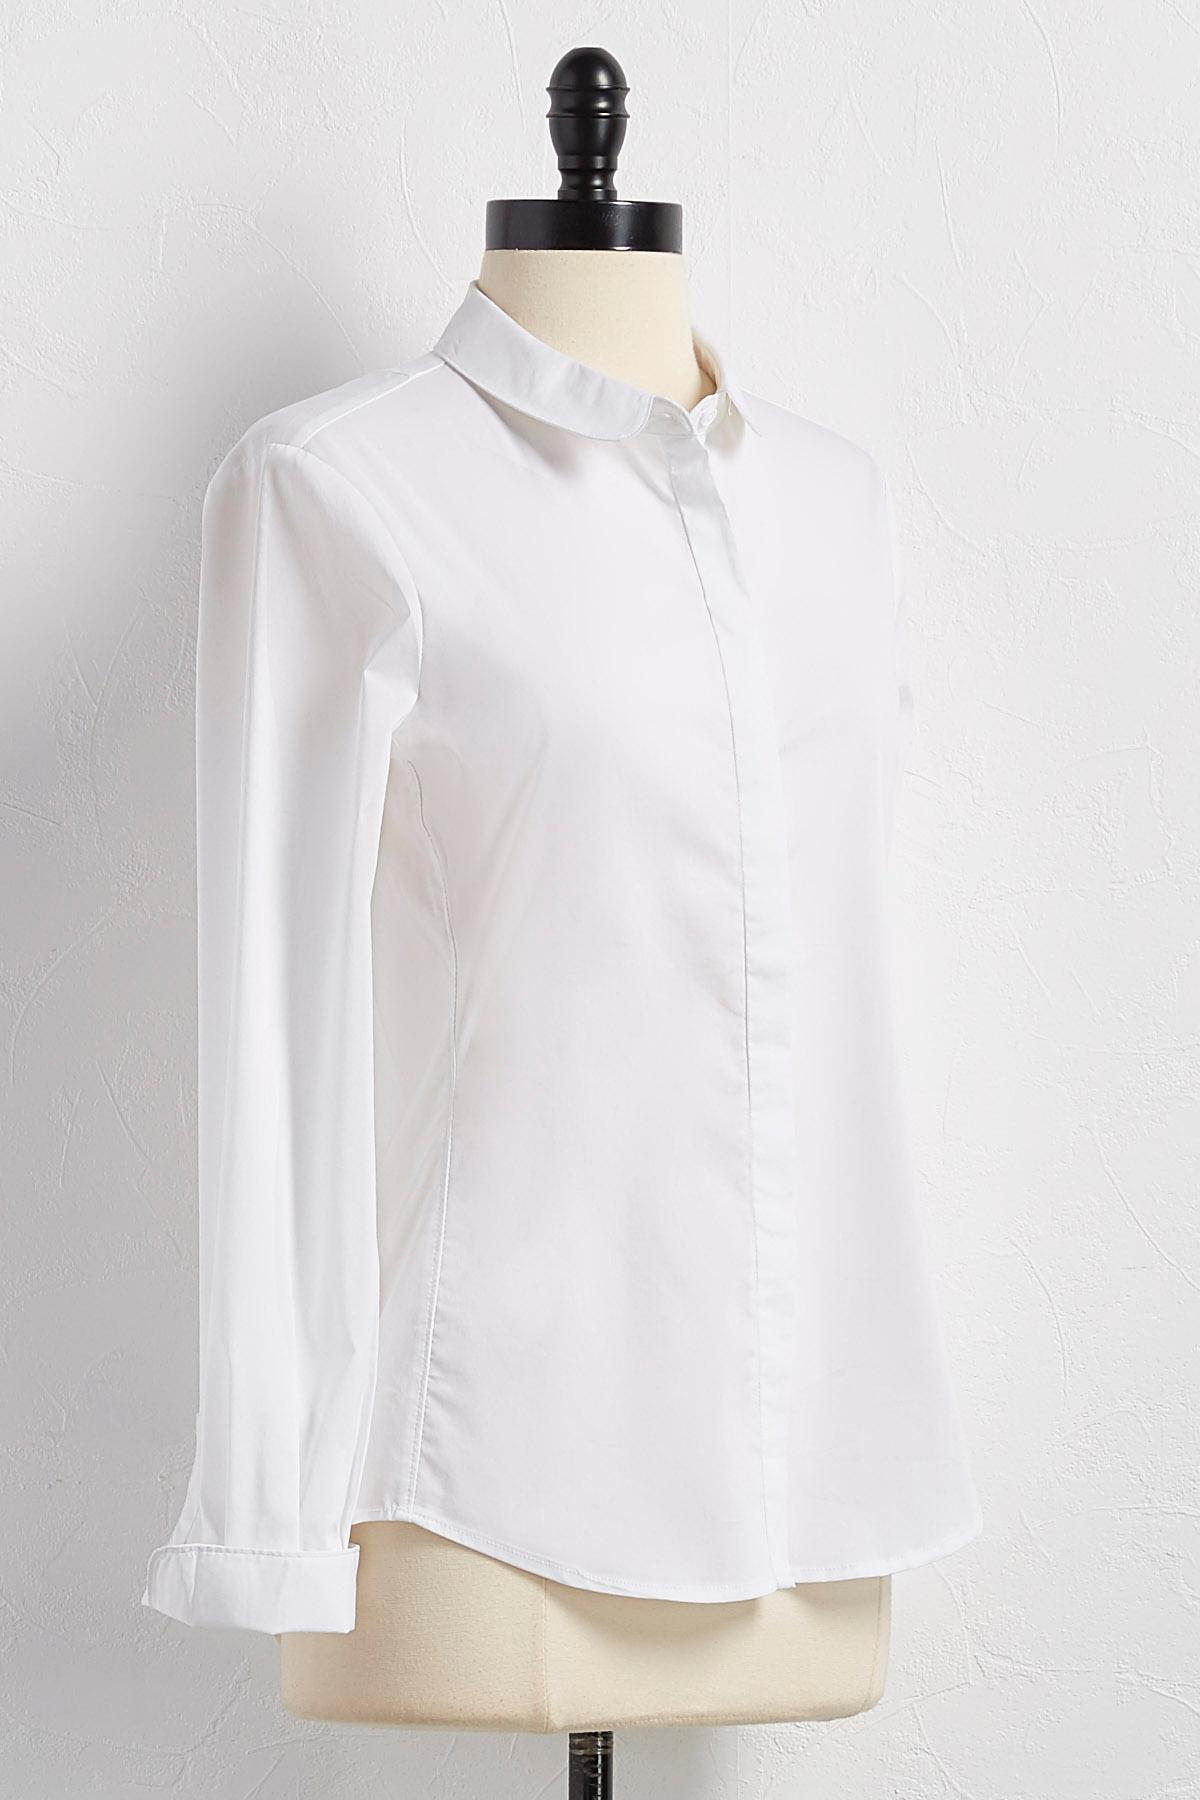 Peter Pan Collar Button Down Shirt